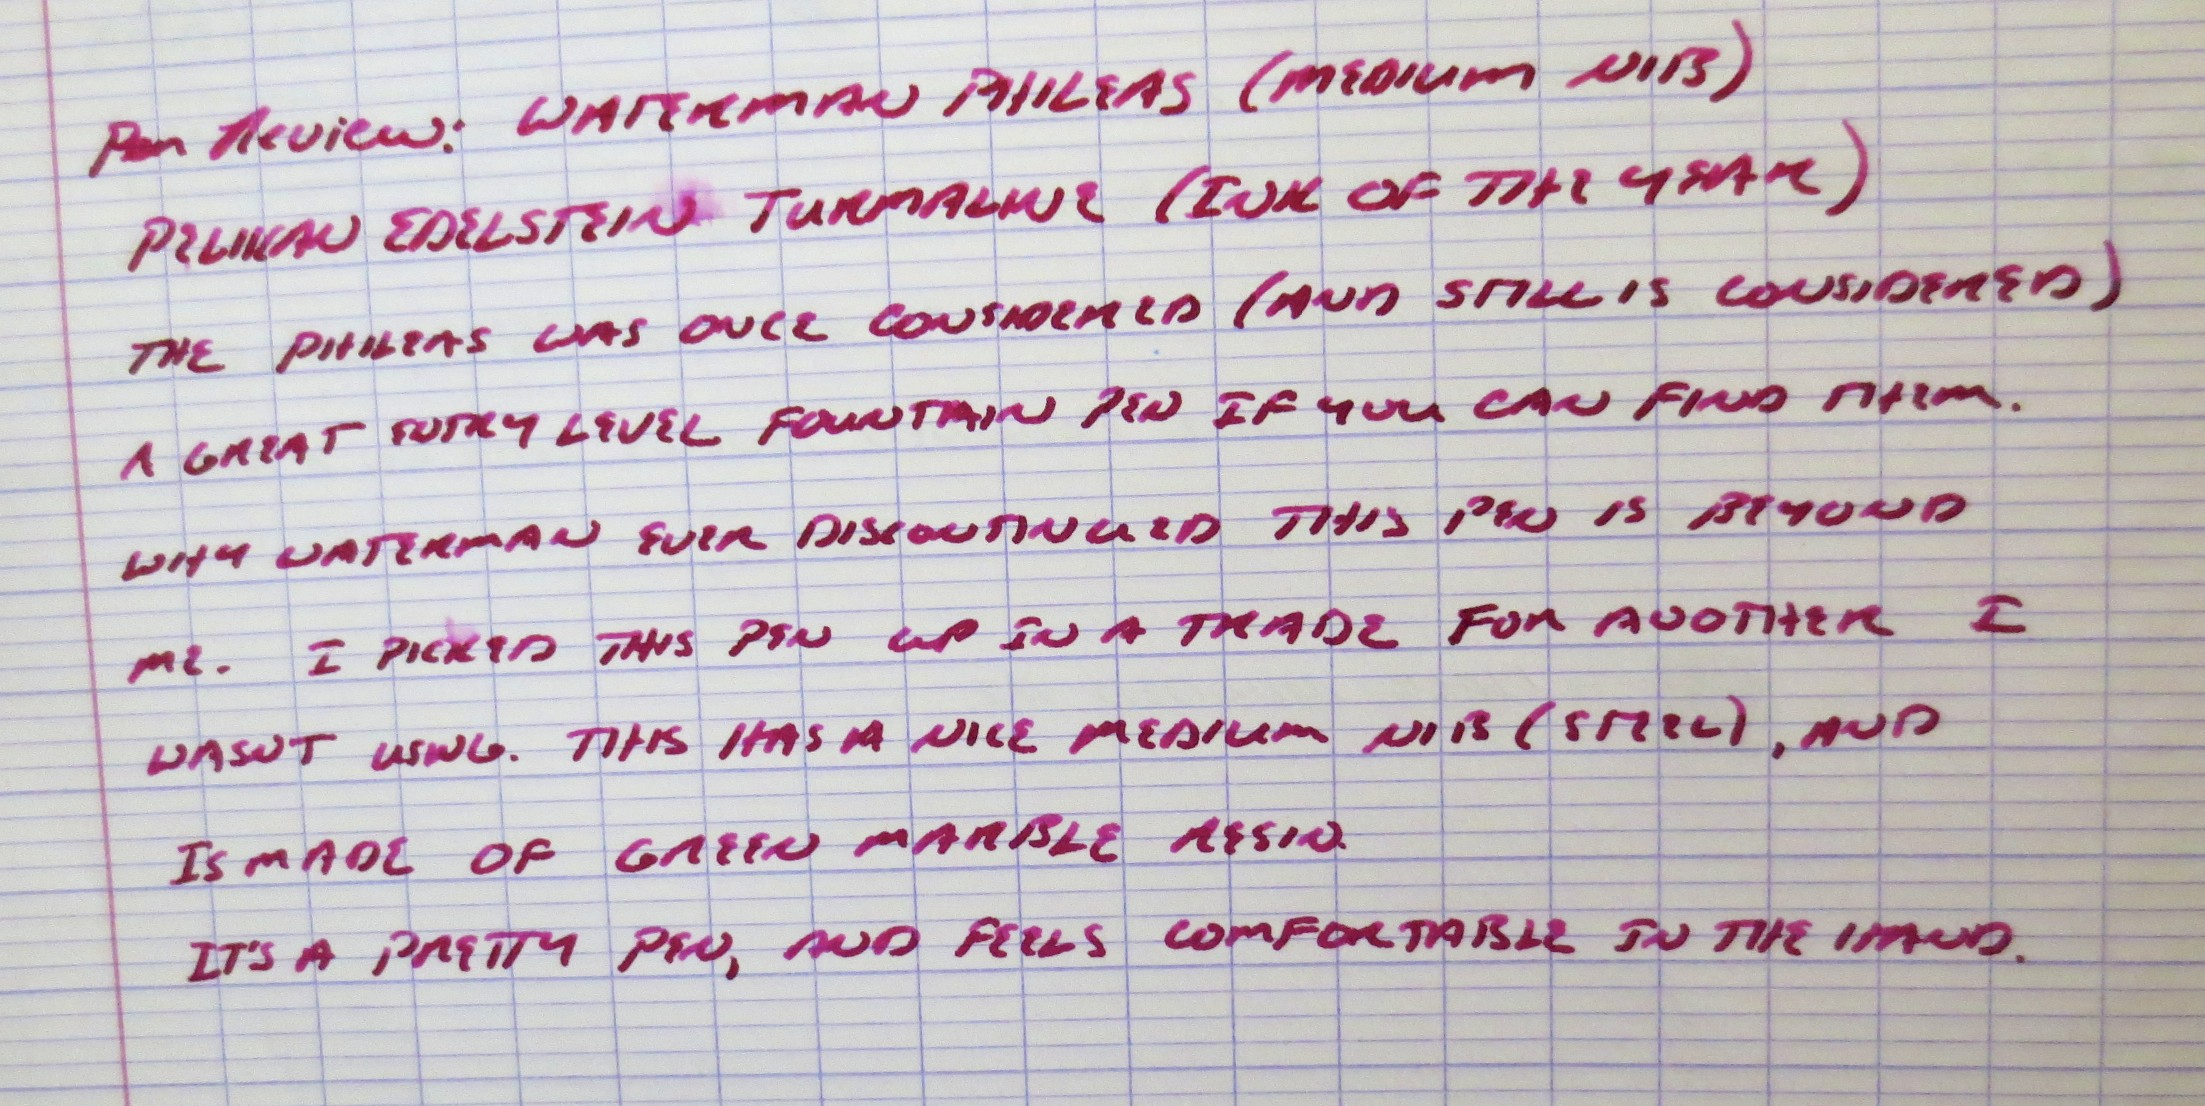 A writing sample from the Phileas, using Edelstein Turmaline during my review of that ink. Paper is Clairefontaine French-ruled.